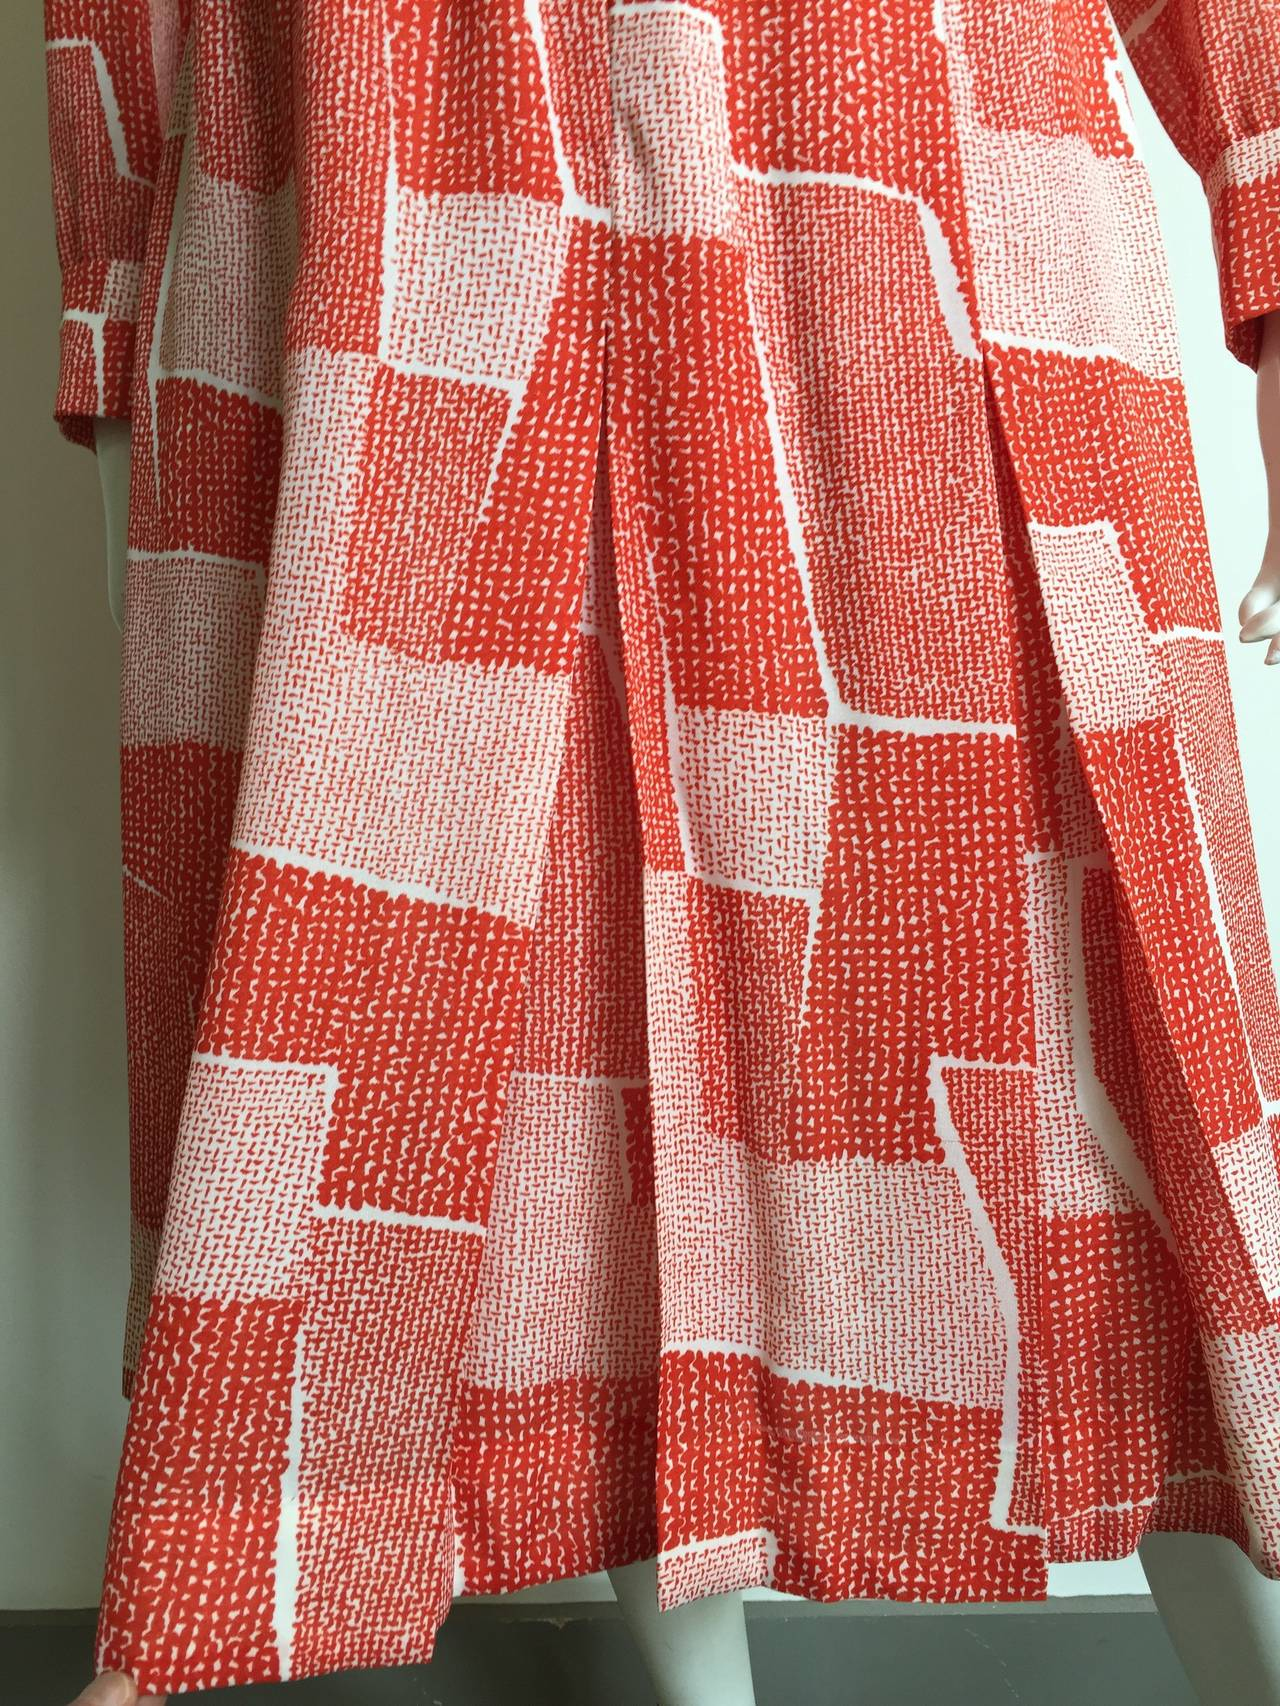 Pink Adele Simpson 70s Dress Size 8. For Sale